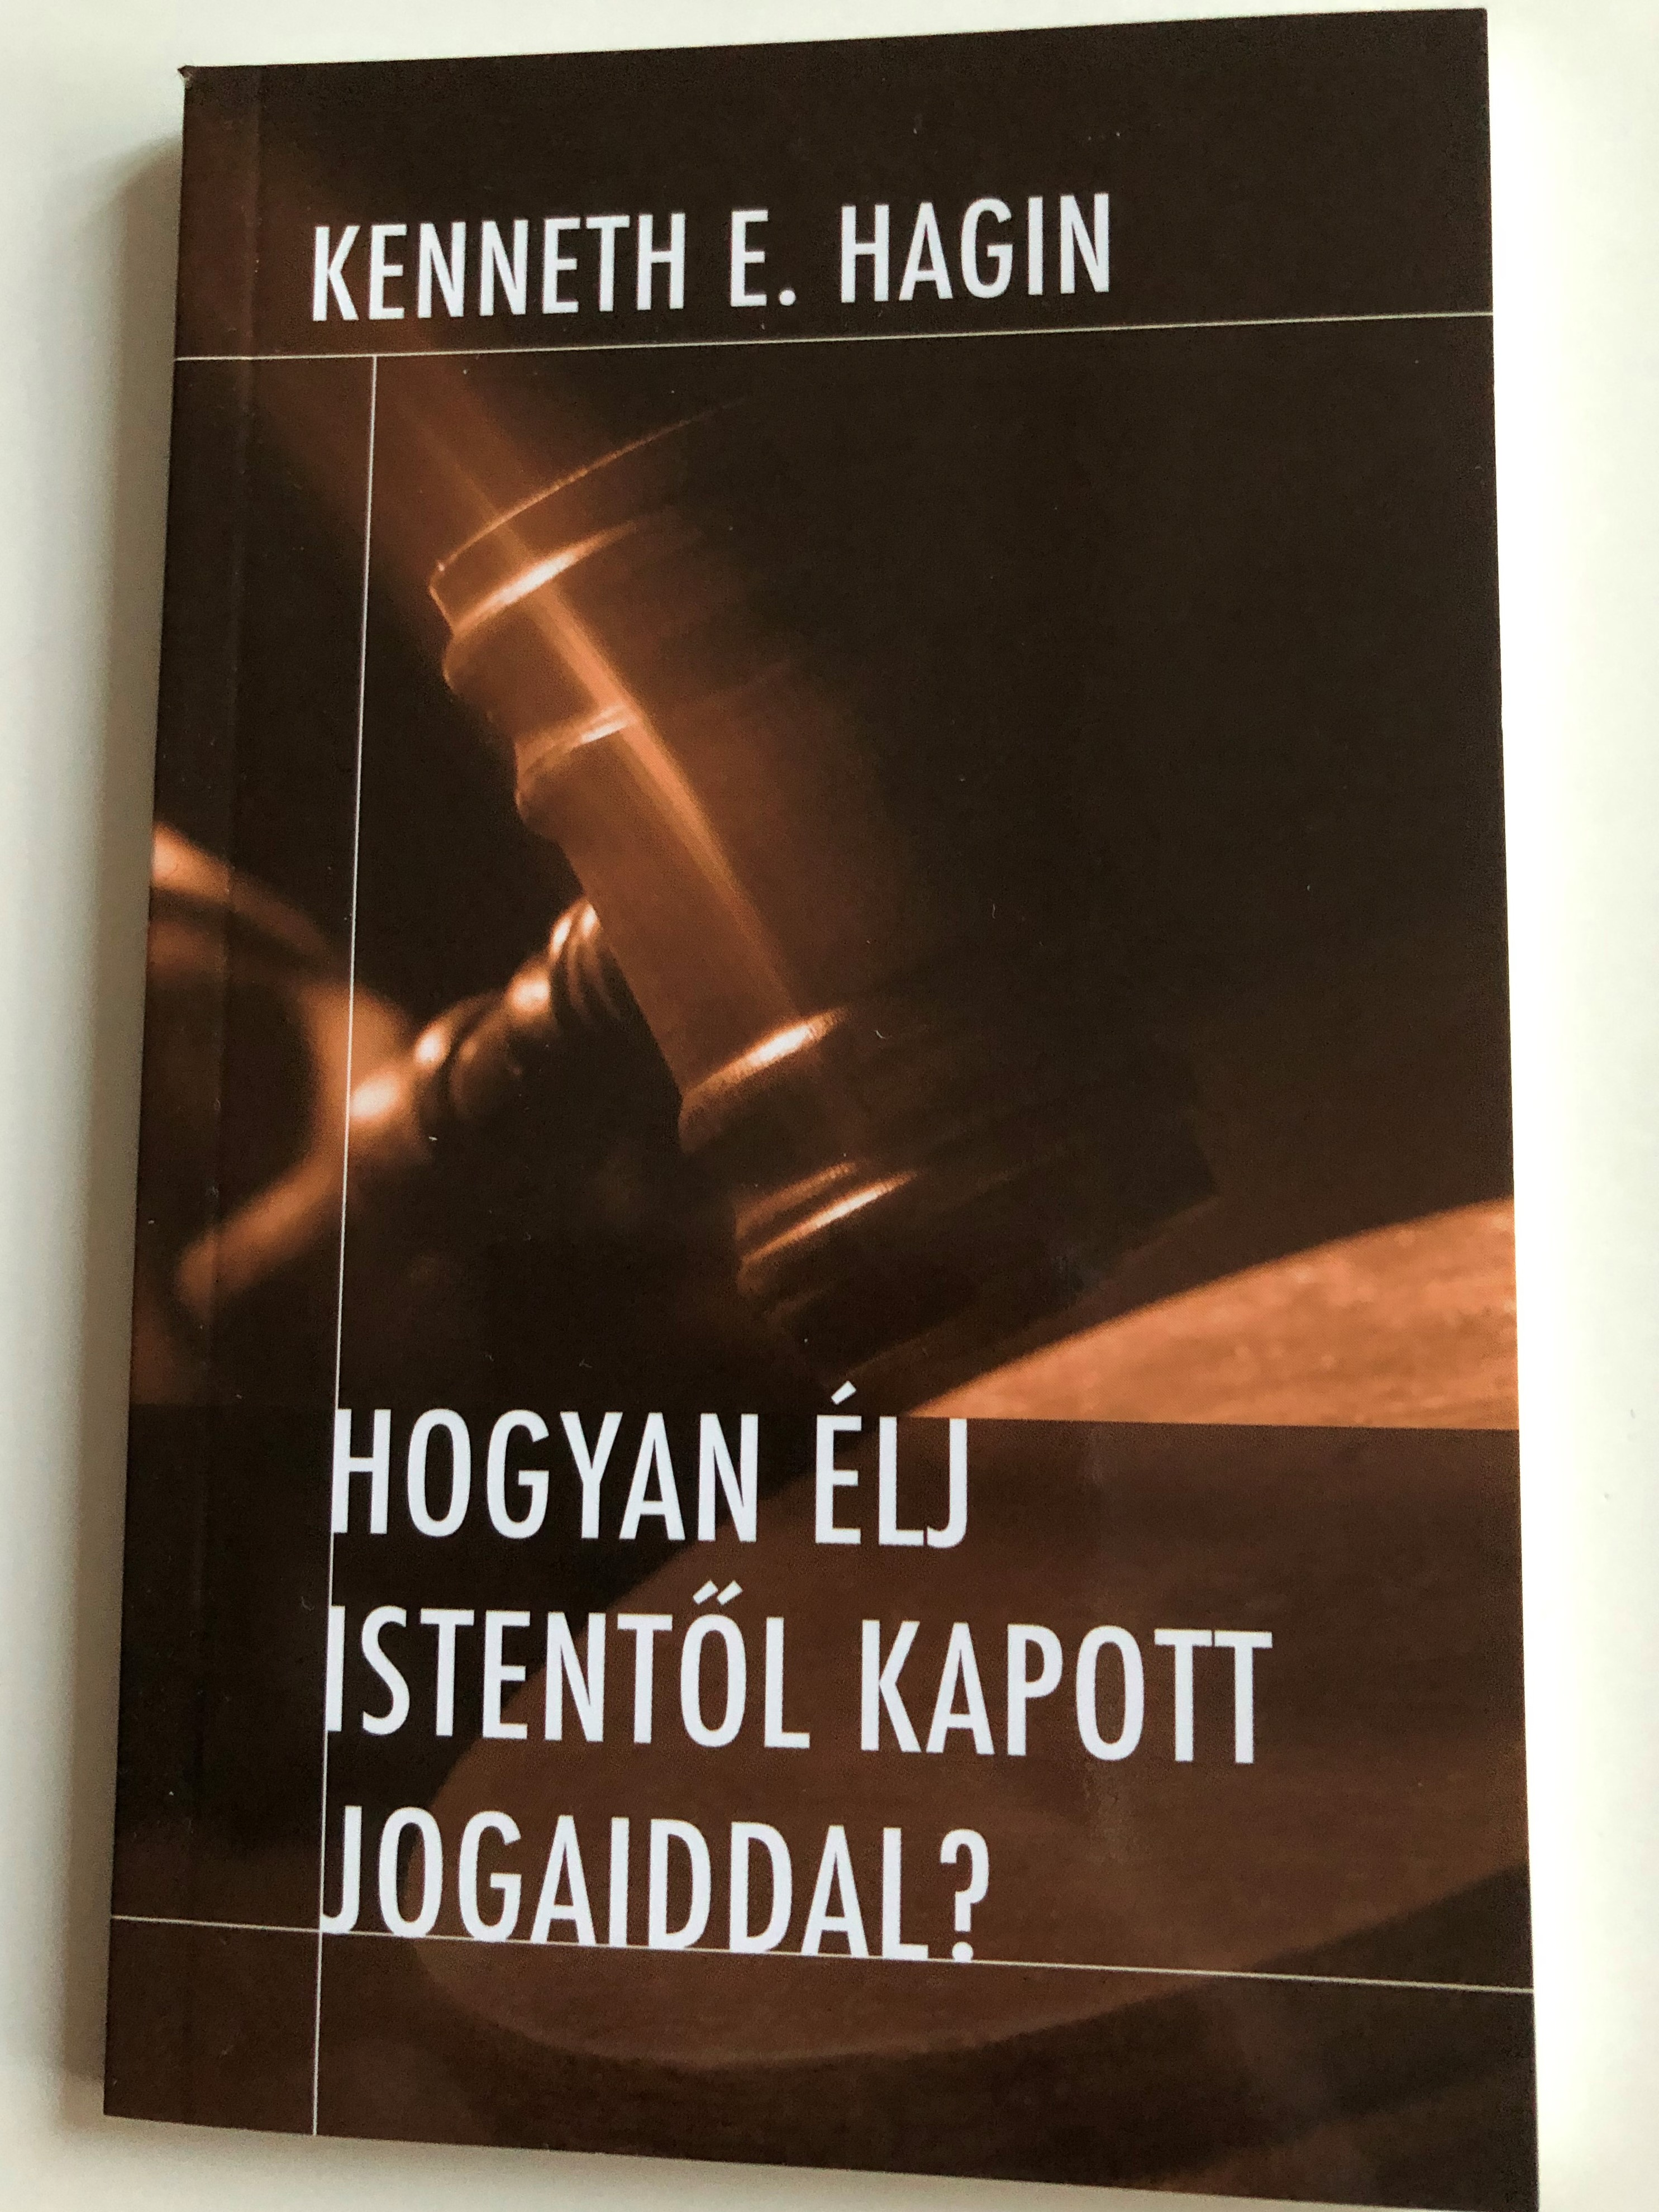 hogyan-lj-istent-l-kapott-jogaiddal-by-kenneth-e.-hagin-hungarian-edition-of-plead-your-case-1-.jpg